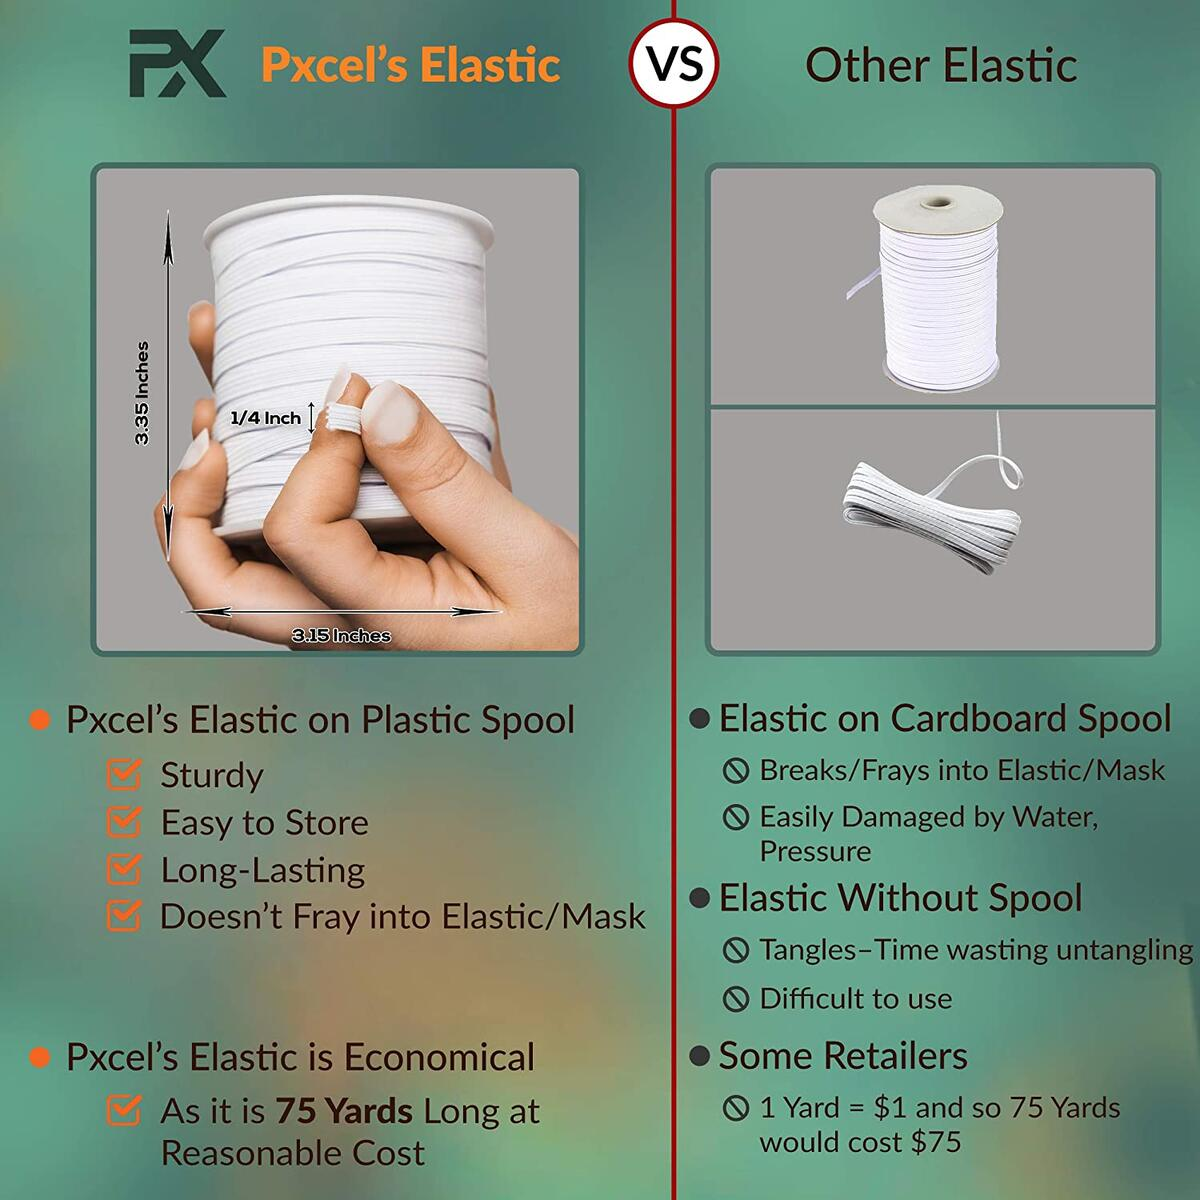 Elastic String Bands for Sewing Masks, White Elastic Cord 1/4 inch for Sewing Masks in 75 Yards by Pxcel Ltd, High Elasticity in Sturdy Plastic Spool